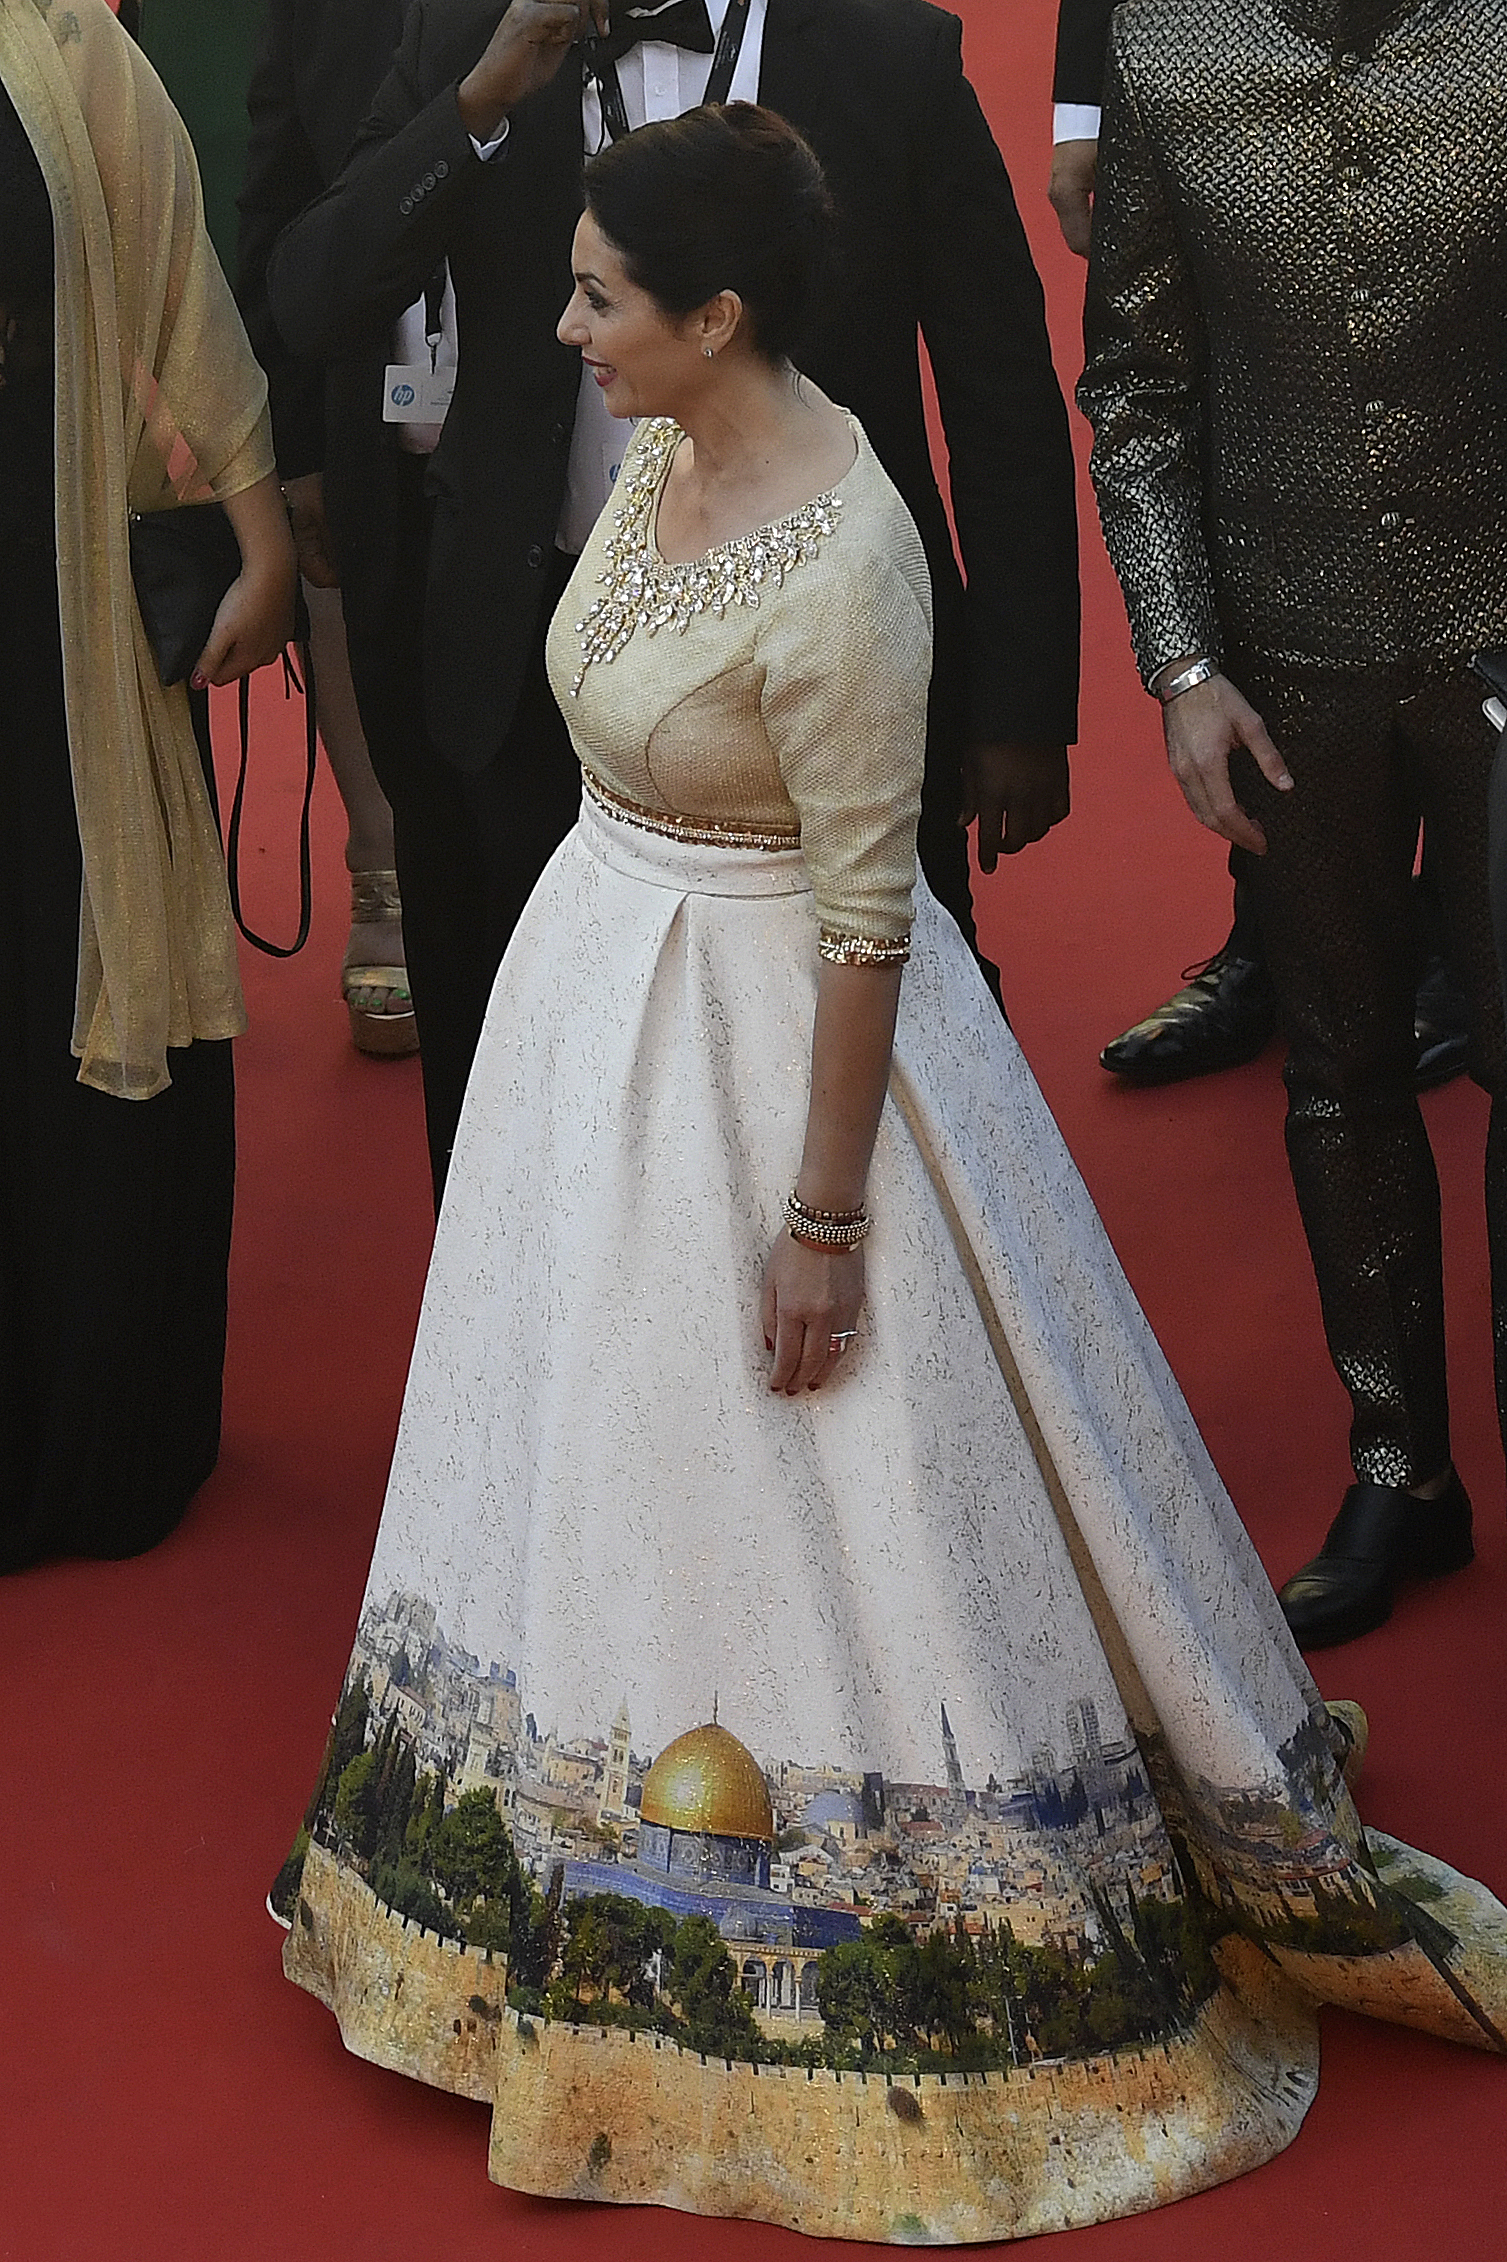 Israeli Culture Minister Miri Regev wearing a dress featuring the old city of Jerusalem at the Cannes Film Festival, May 17, 2017 (ANTONIN THUILLIER / AFP).